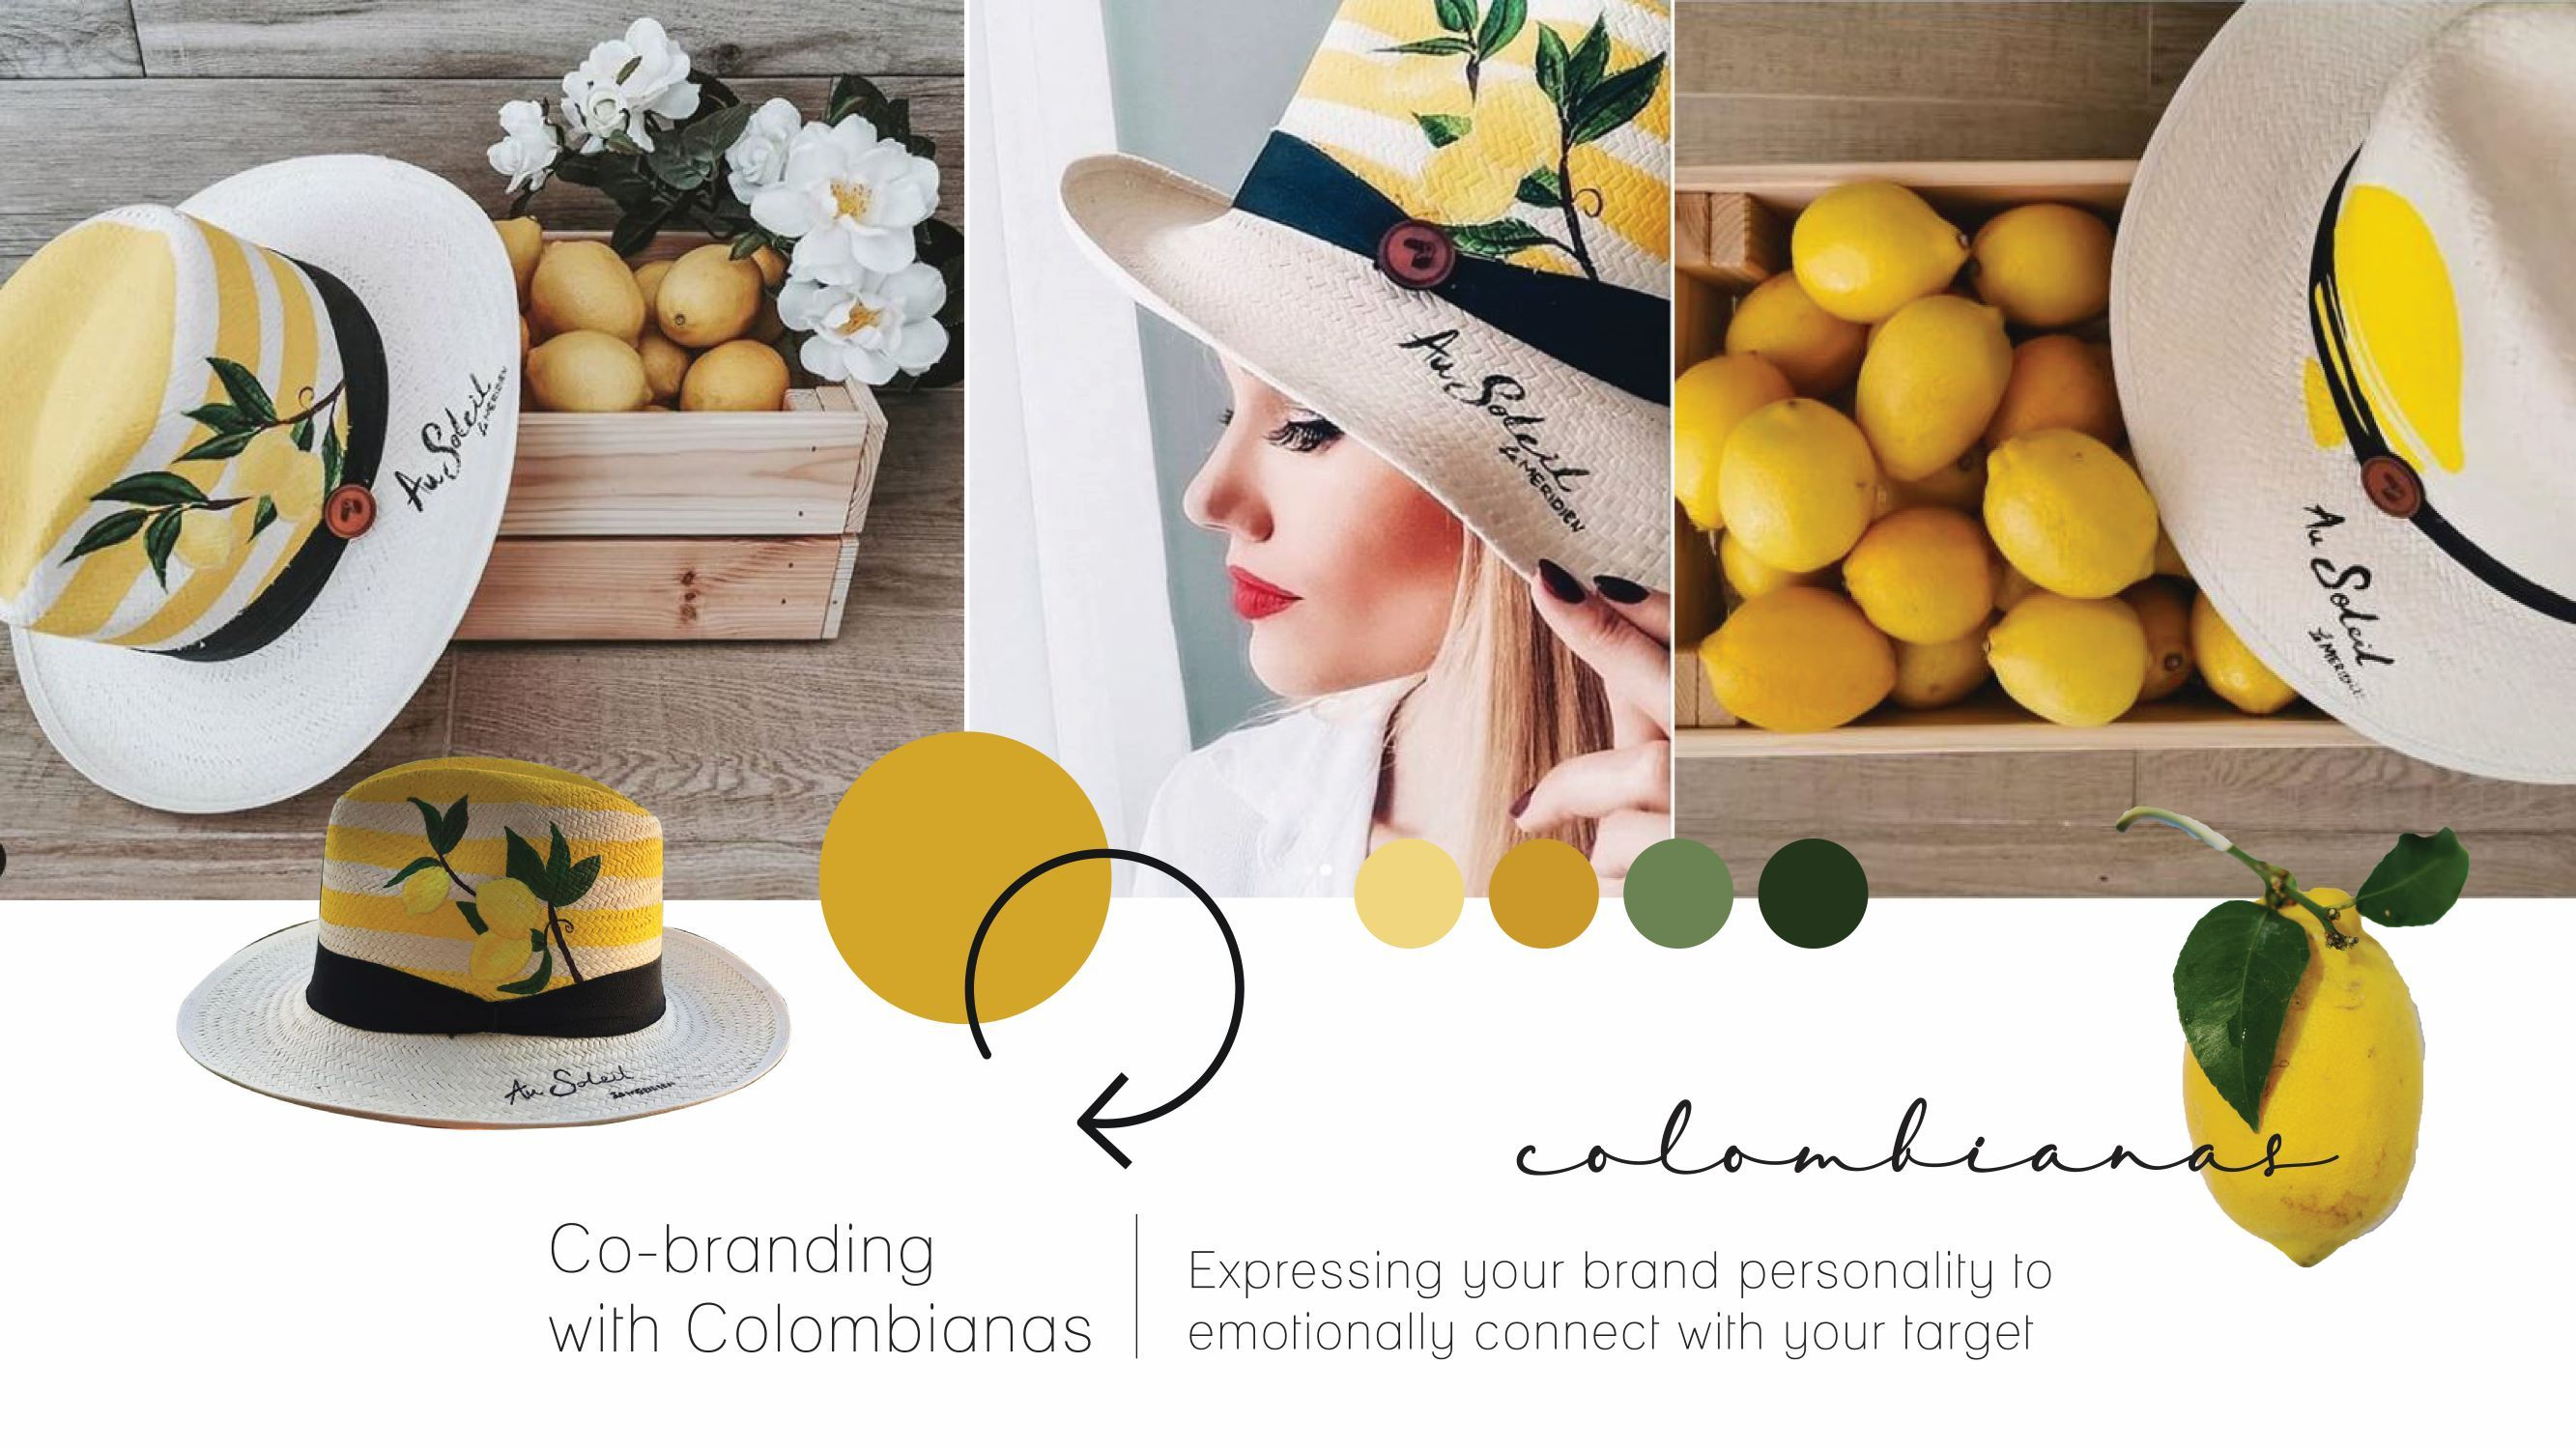 Co-branding with Colombianas